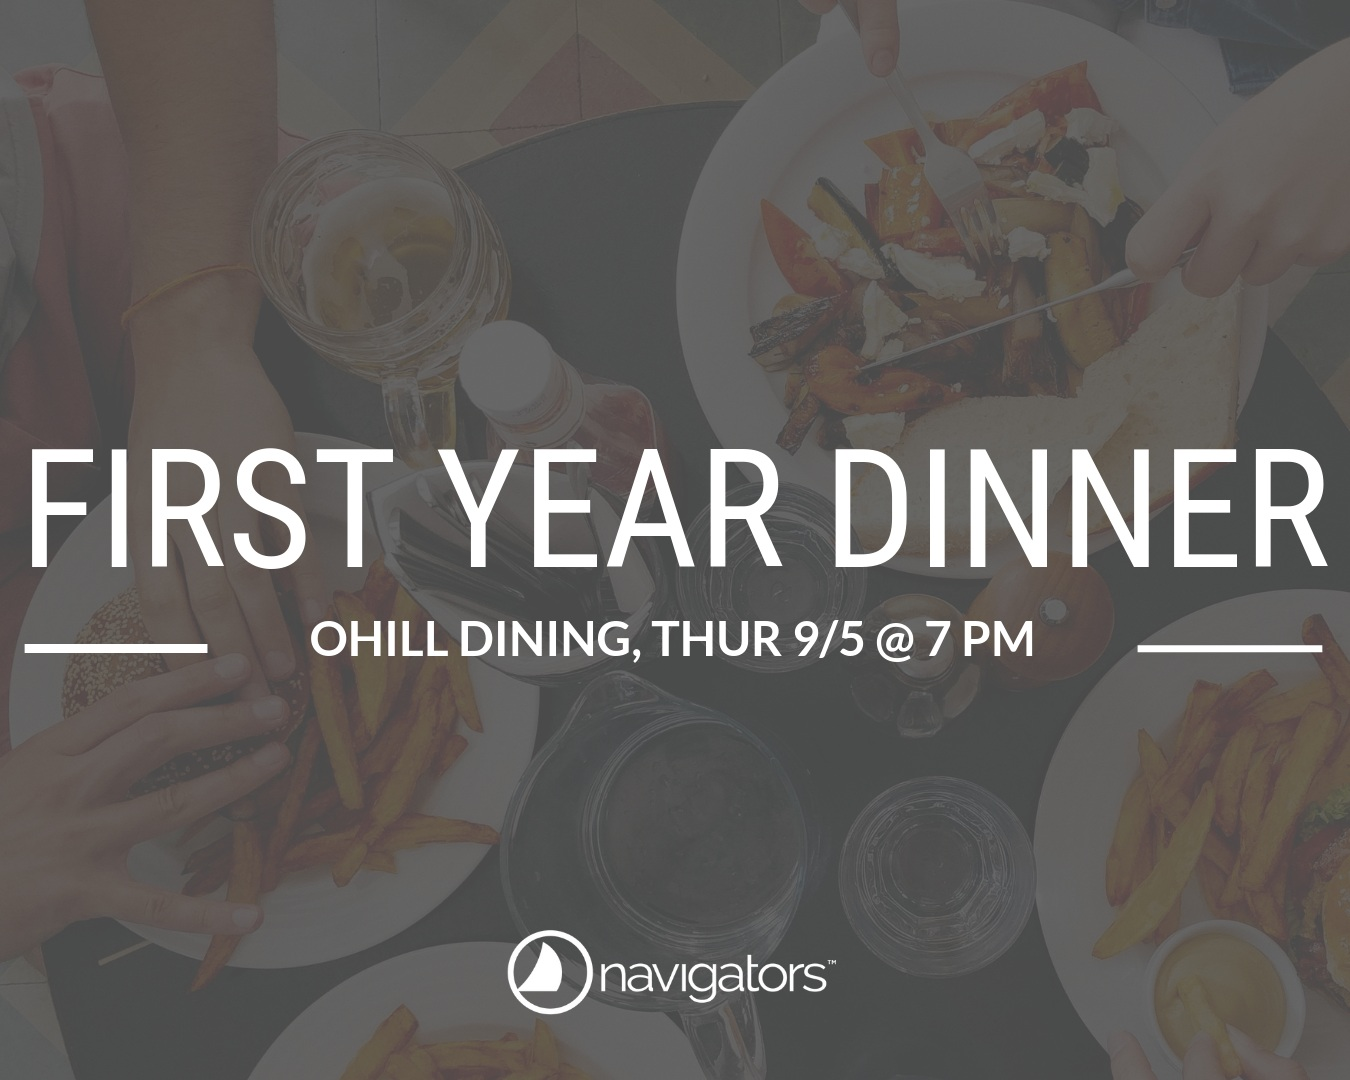 Copy+of+first+year+dinner.jpg